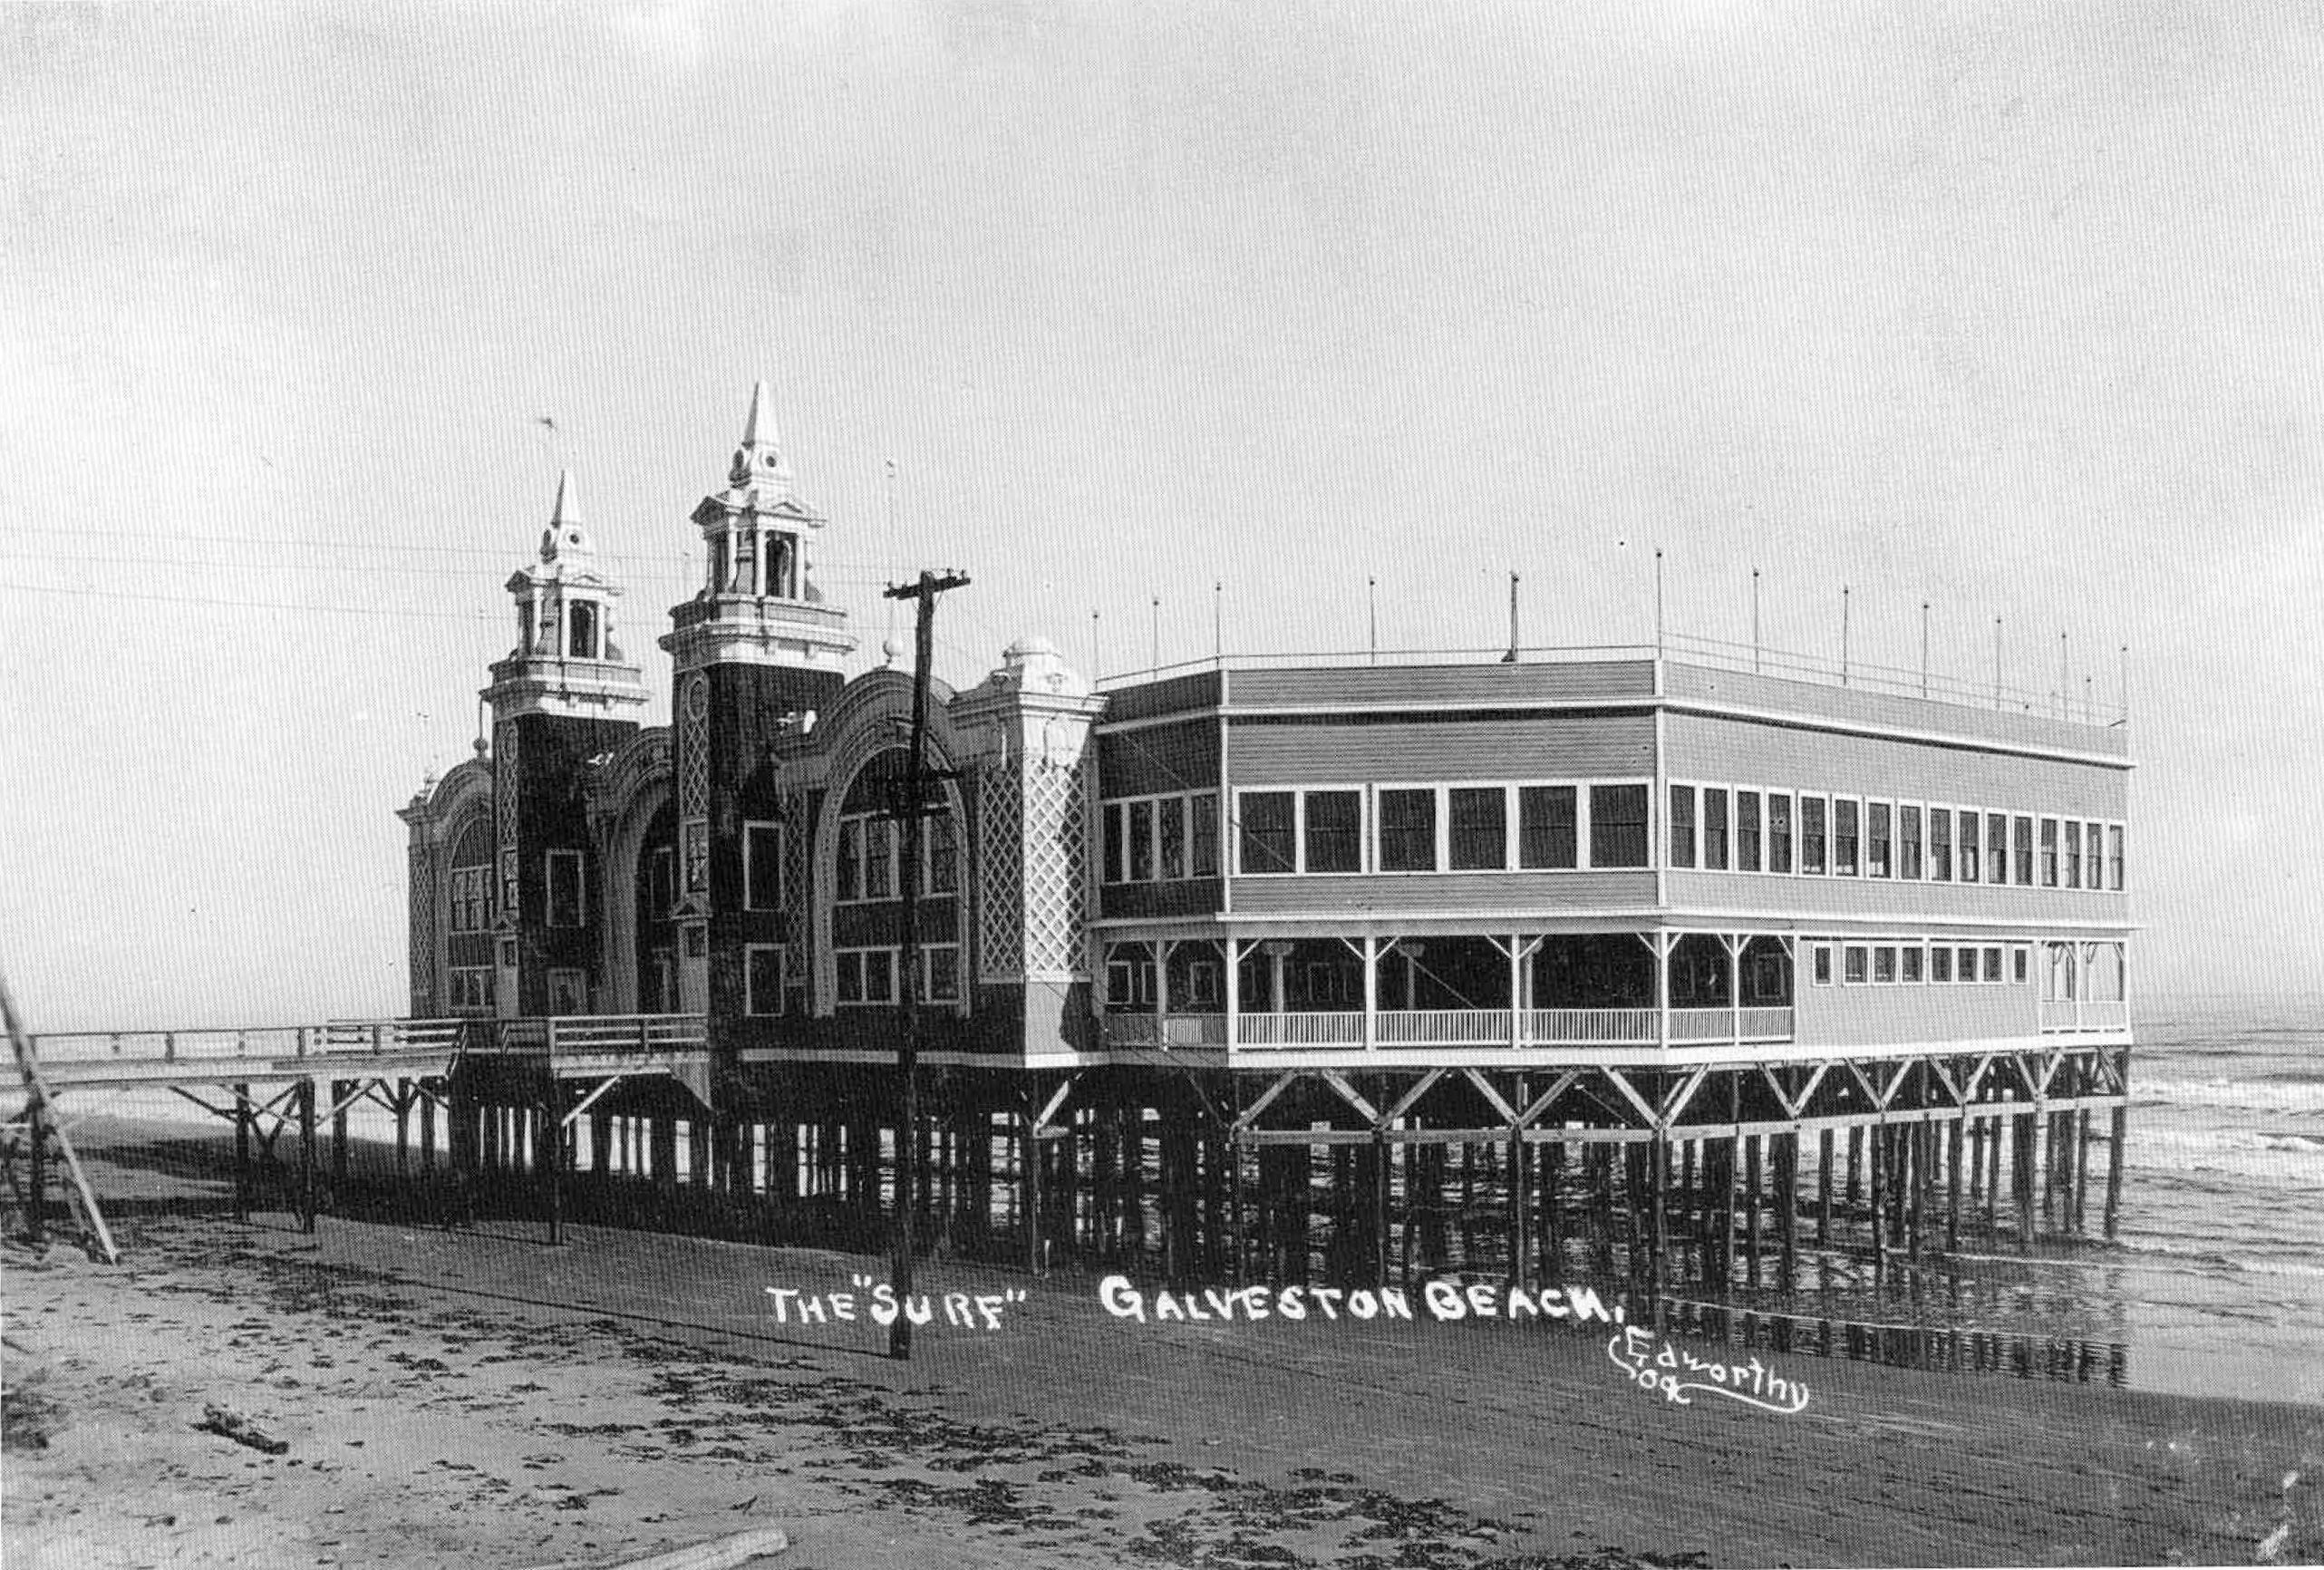 Pleasure Pier Galveston Late 1800 S Bet They Never Thought It Would Be Like It Is Today Galveston Texas Galveston Galveston Island